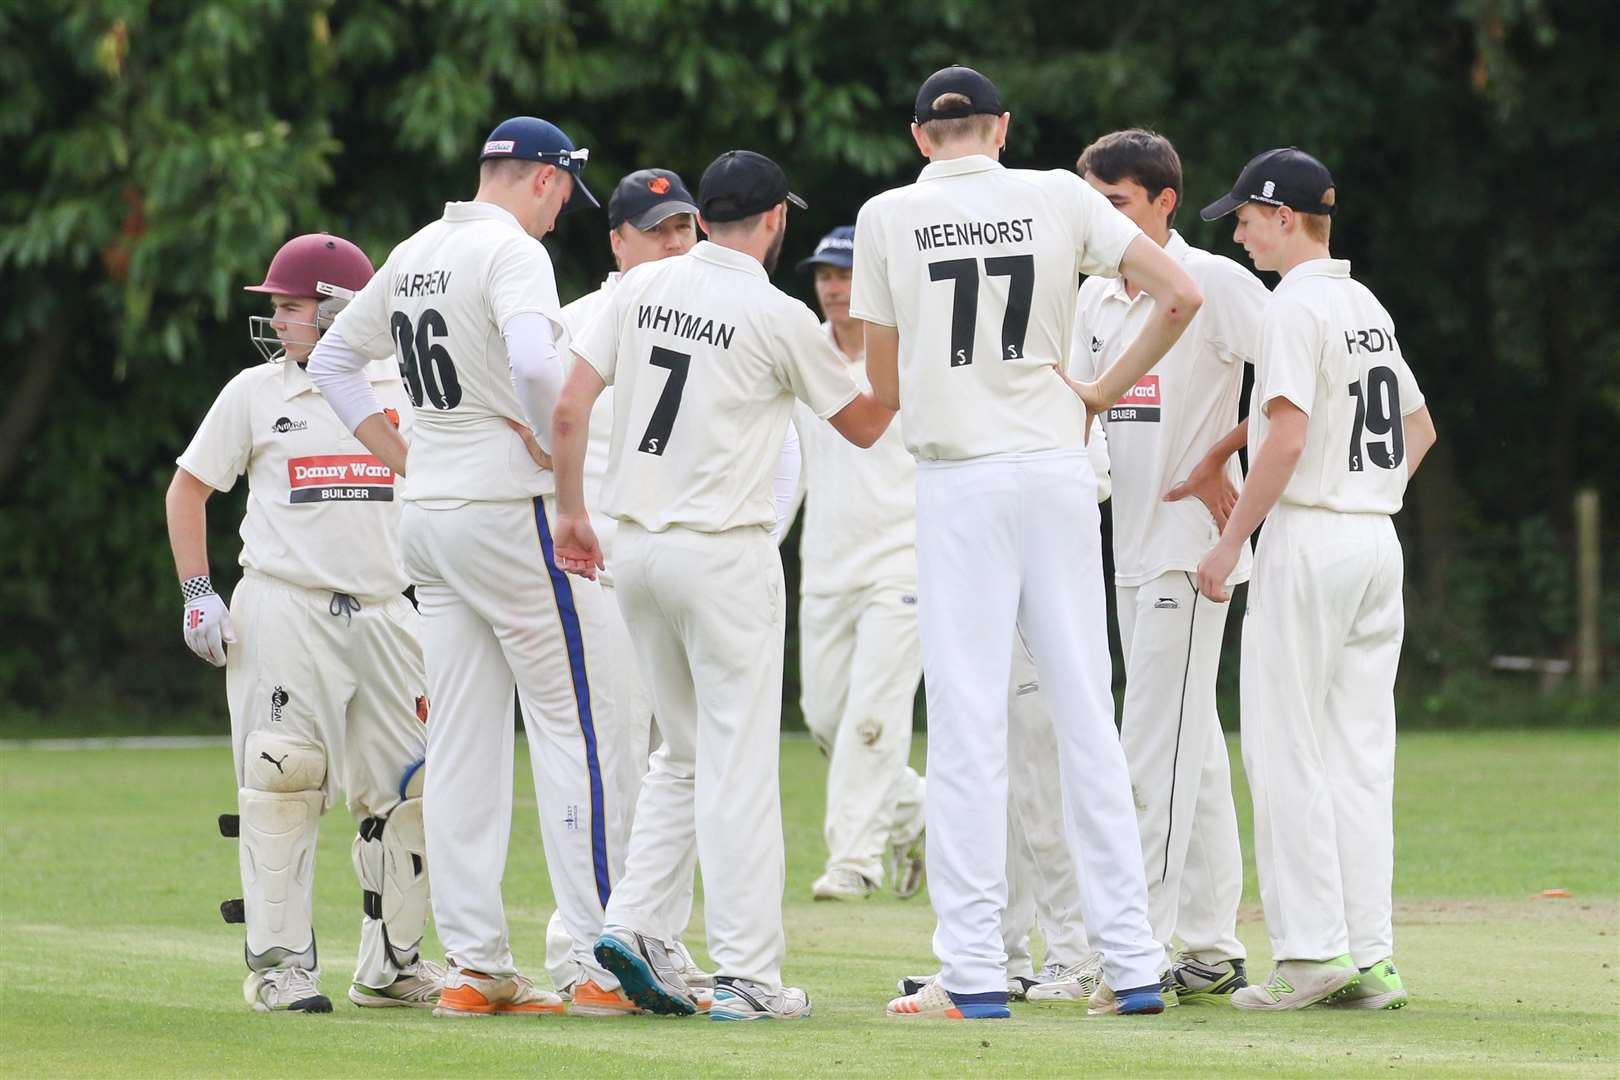 KEY WICKET: Diss Cricket Club discuss their next move after capturing the key Old Buckenham wicket of Ben Shearing, as they took six wins from seven to end their season